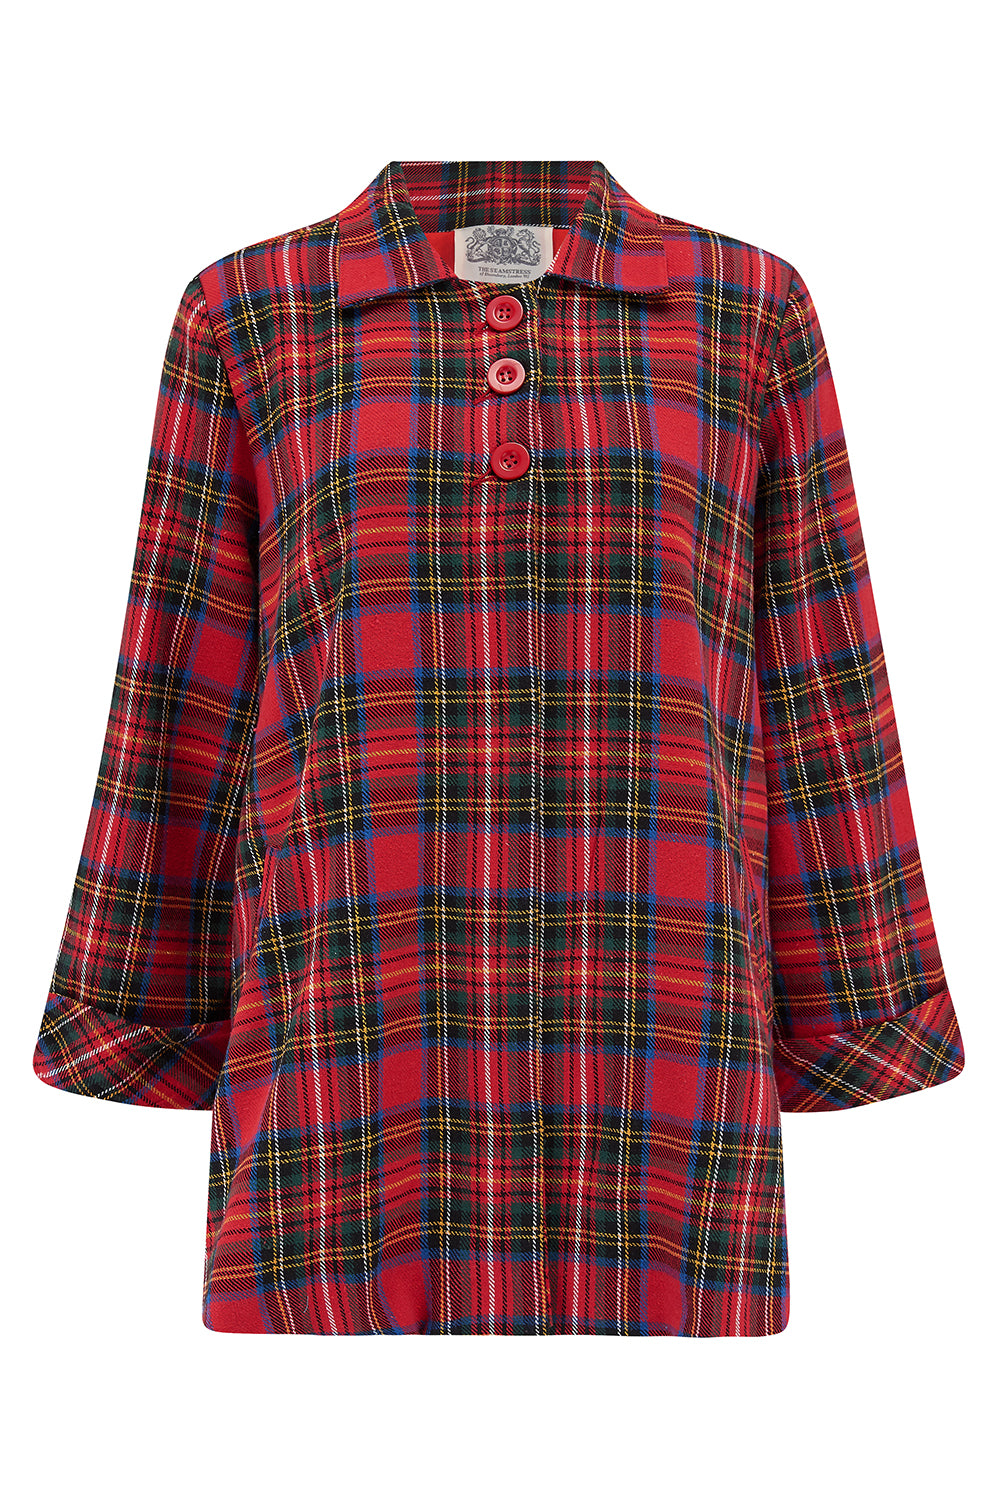 Vintage Coats & Jackets | Retro Coats and Jackets Swing Jacket in Red Tartan Check  Vintage 1940s Cape Style Inspired Over Coat £125.00 AT vintagedancer.com